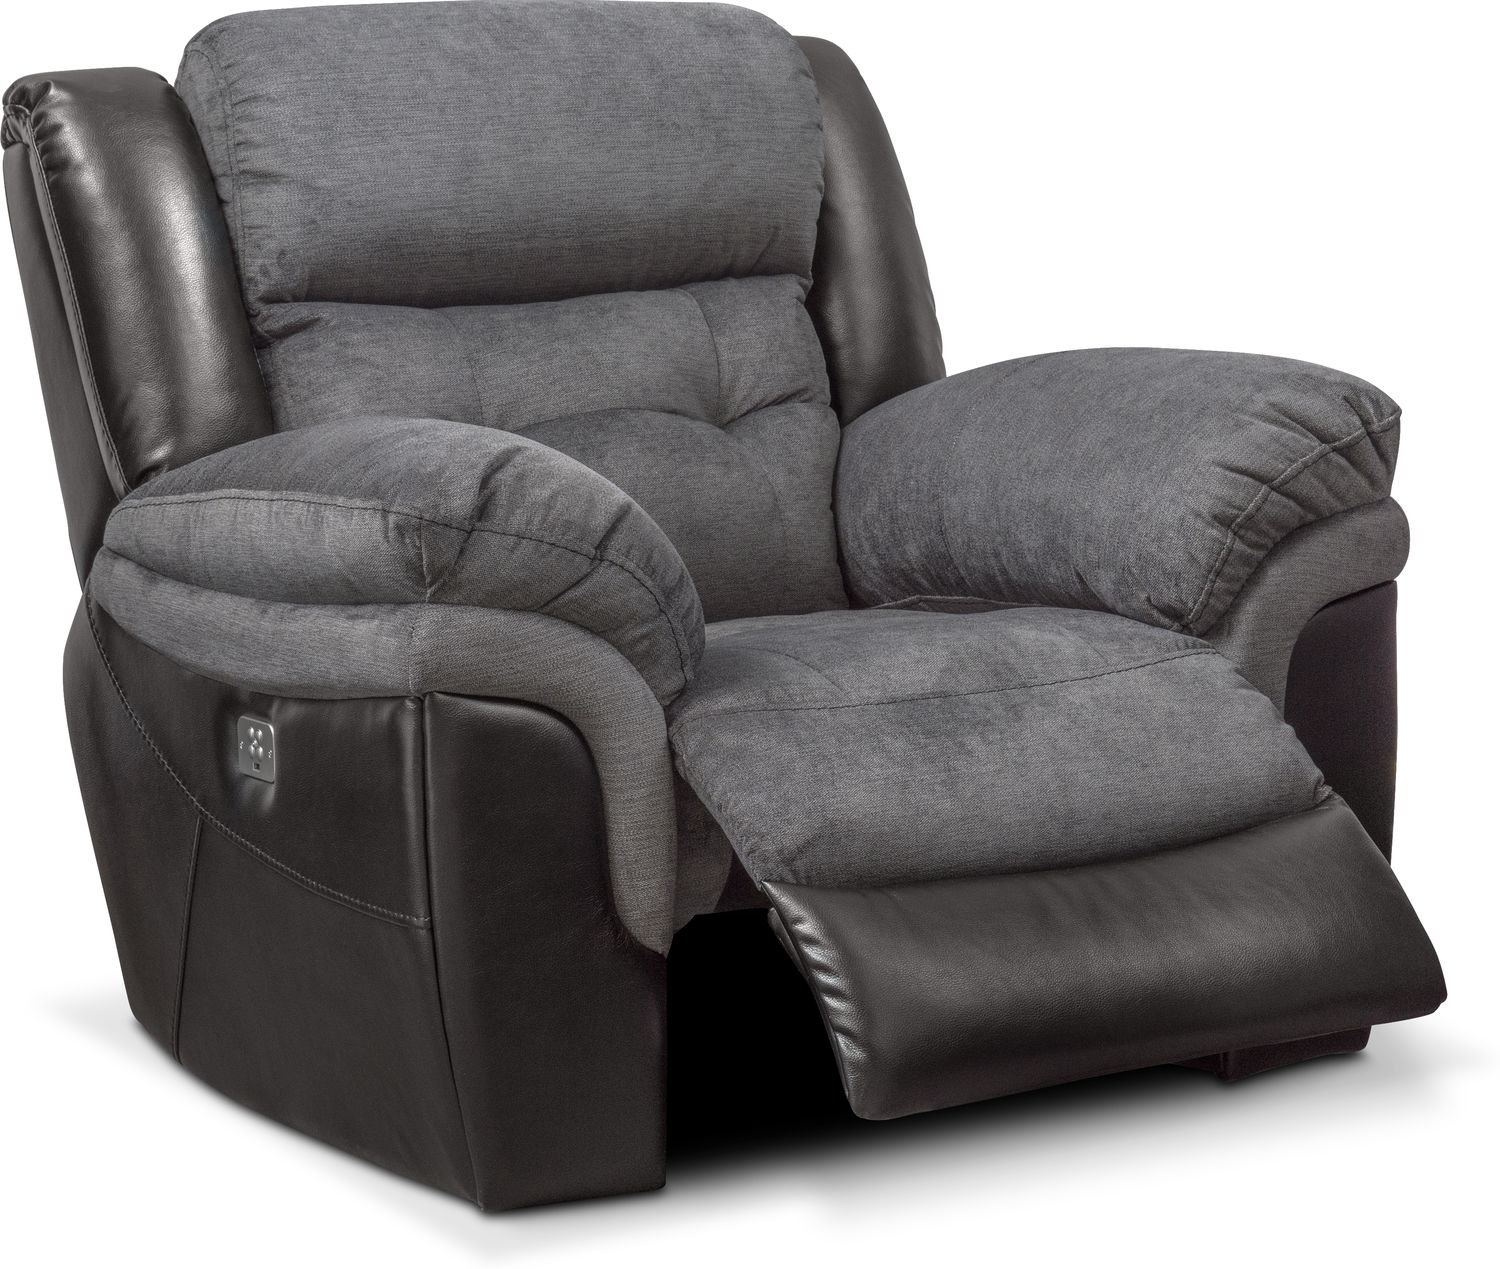 Tacoma Dual Power Recliner Black Value City Furniture